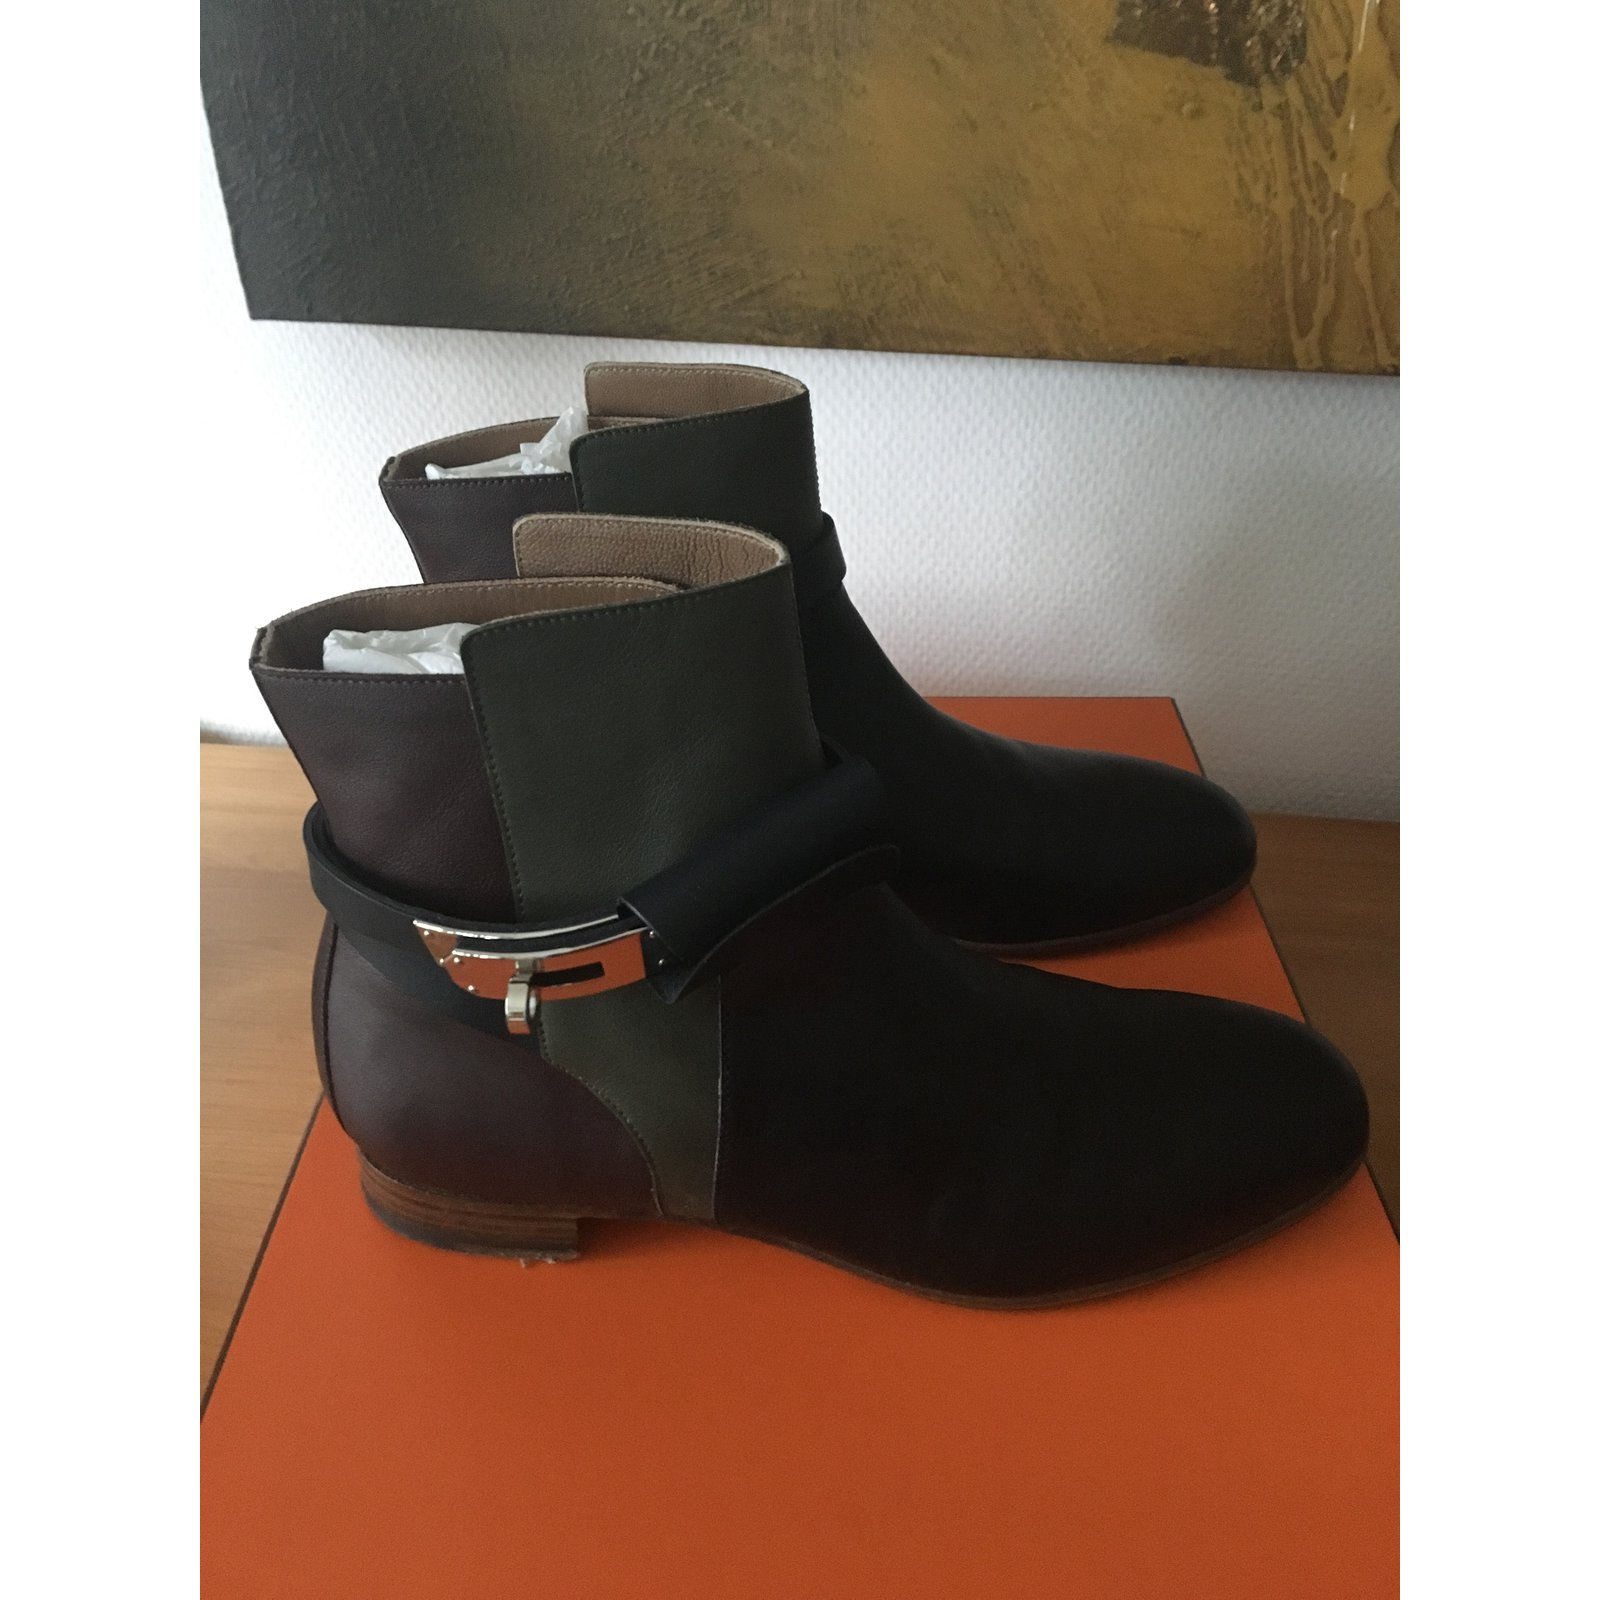 Closet Hermès 53734 ref Autre Joli Bottines Neo Bottines Cuir l1JFKc